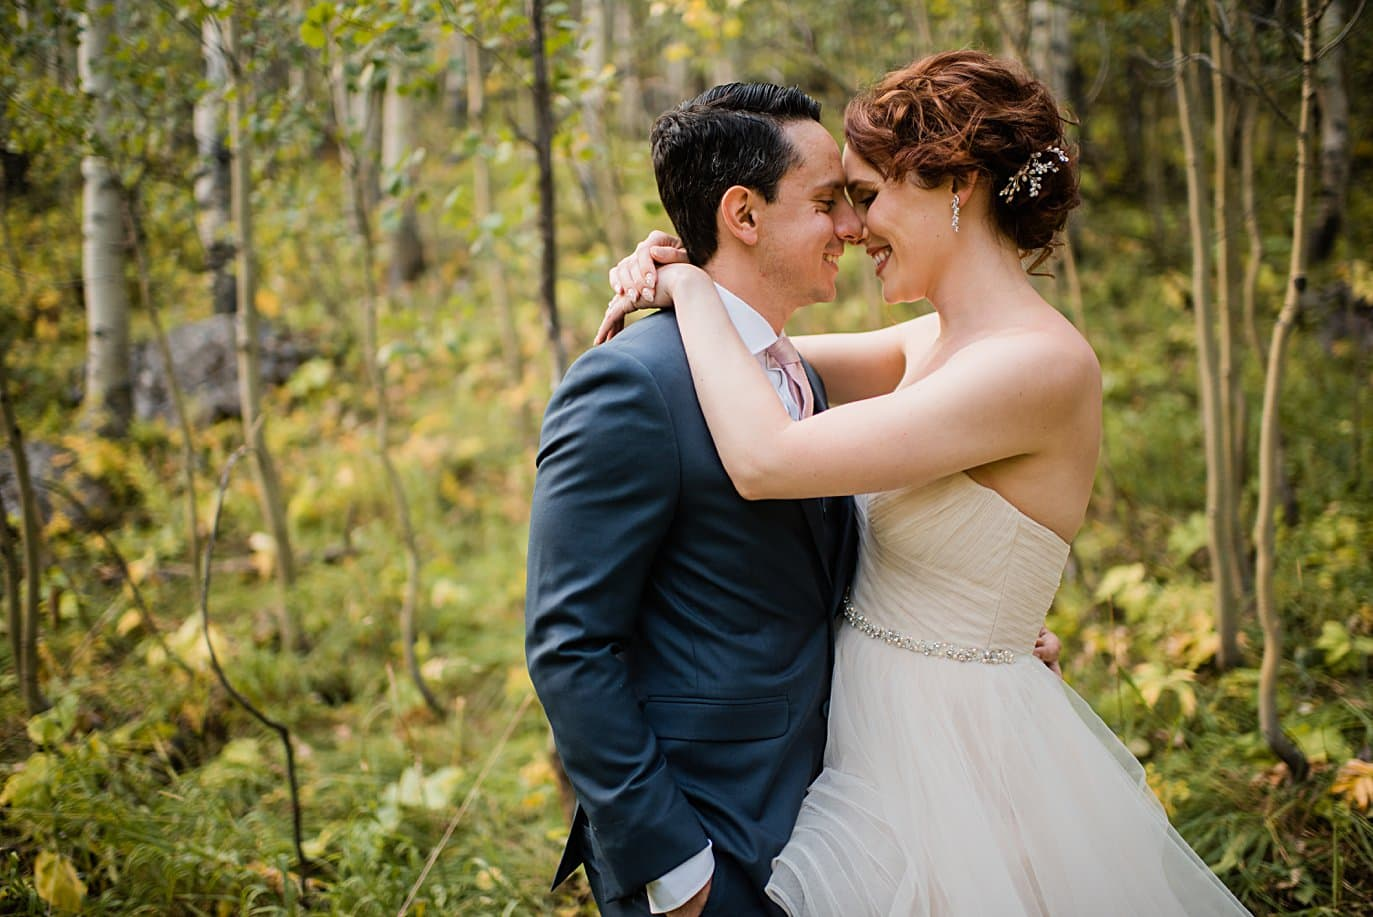 bride and groom cuddle in the early fall aspen trees at fall Maroon Bells wedding by Snowmass wedding photographer Jennie Crate